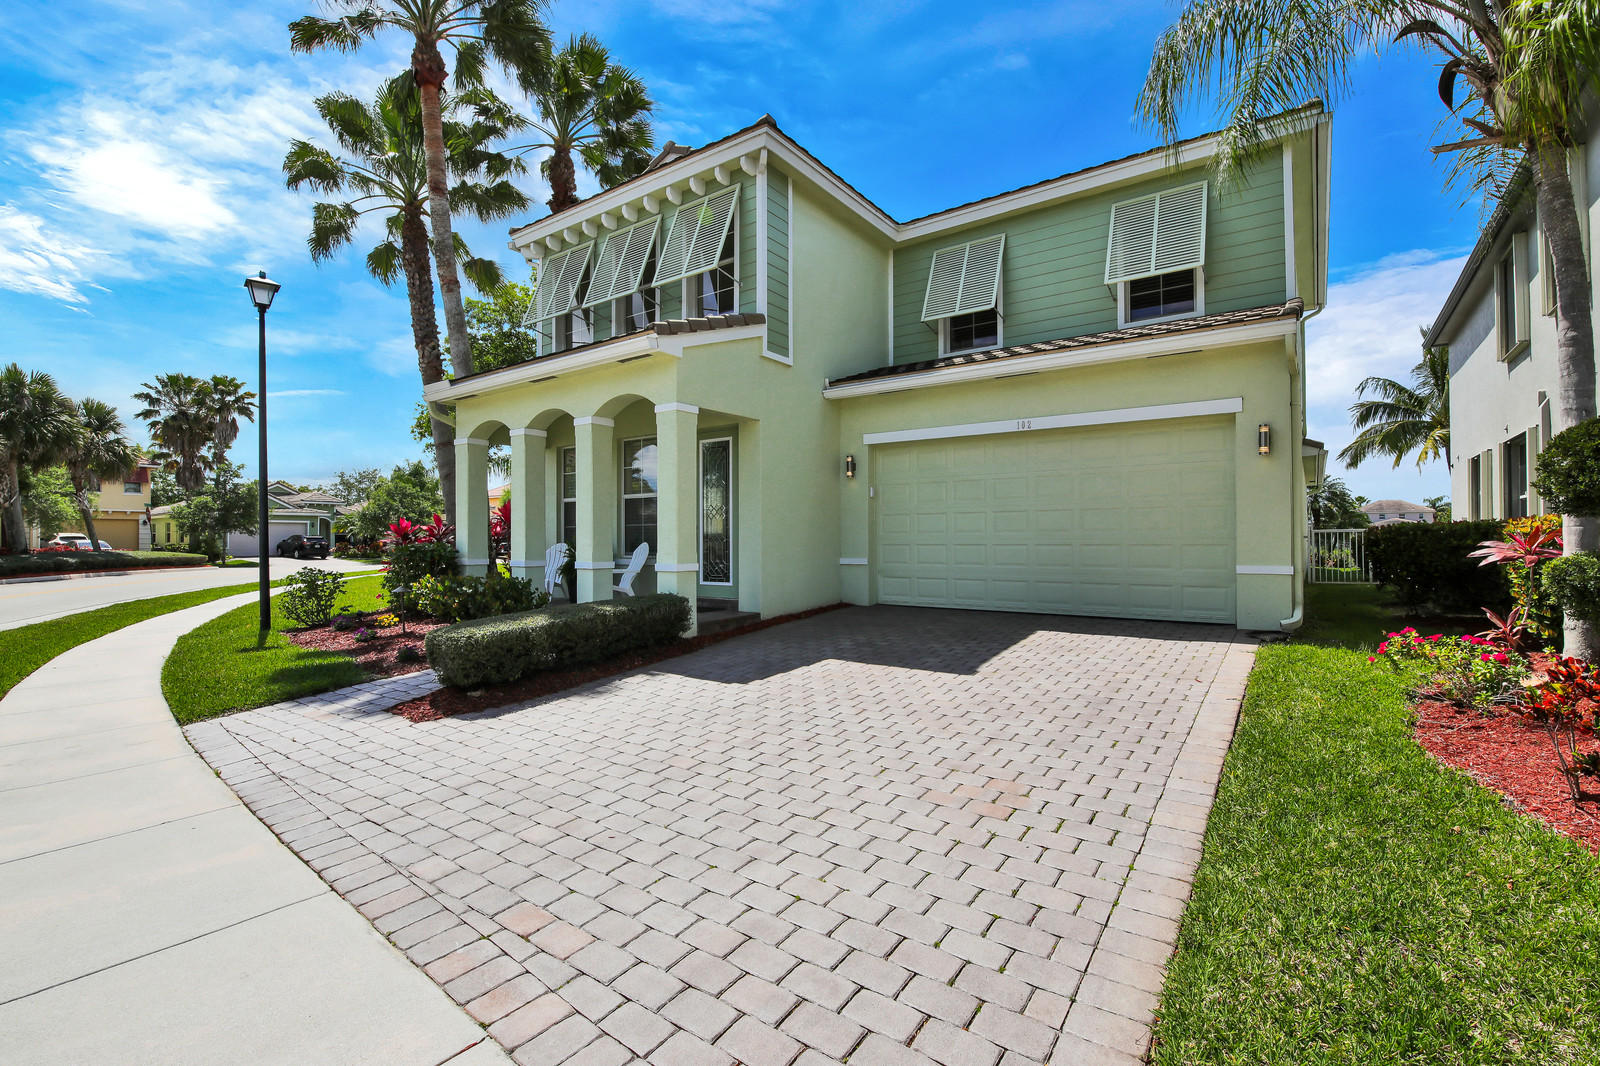 Home for sale in Palm Bch Plantation Royal Palm Beach Florida